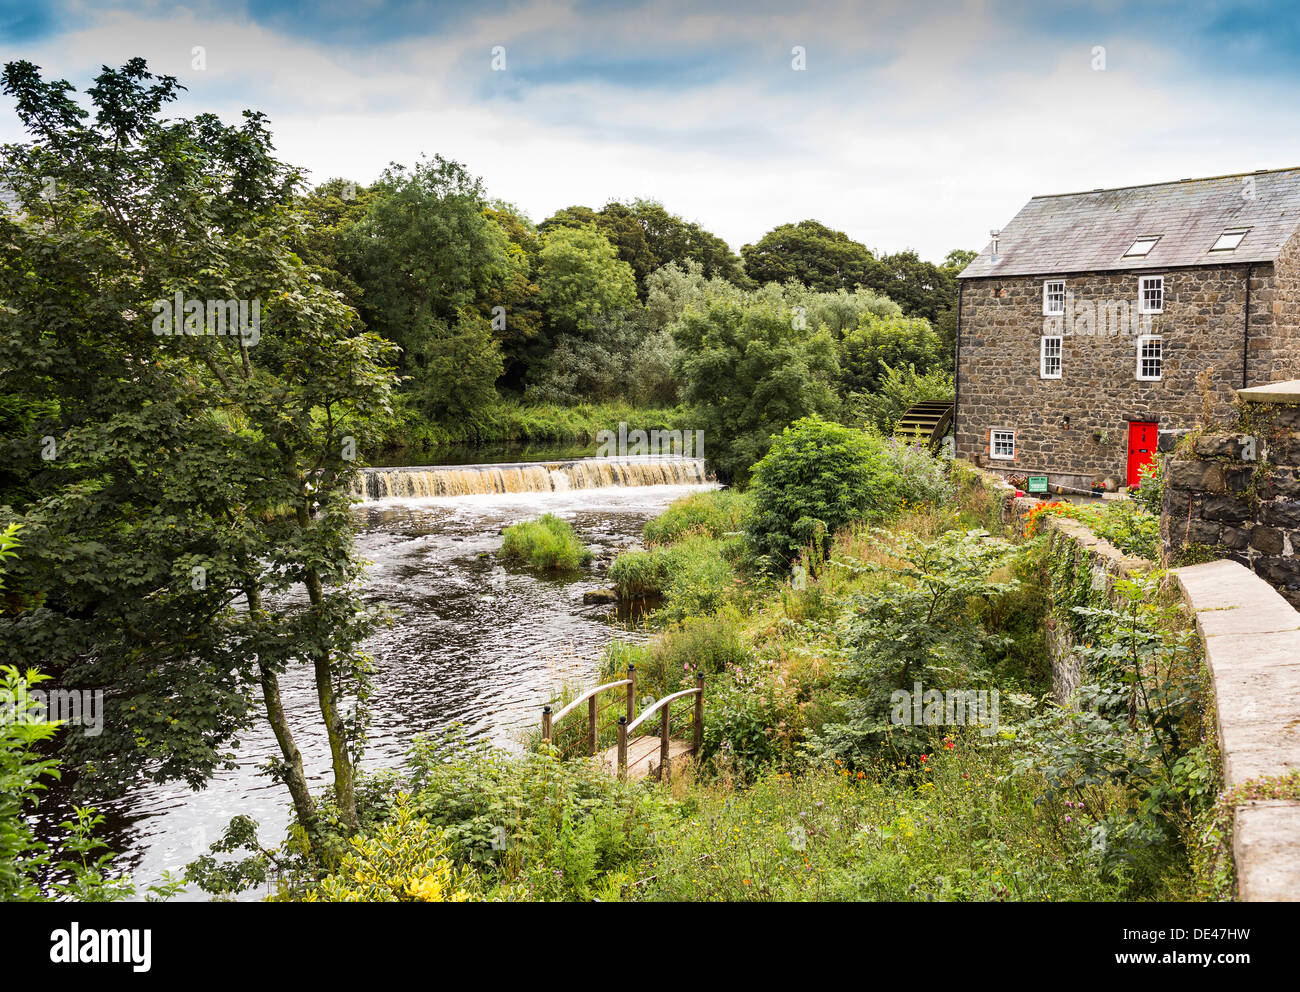 Salmon Station River Bush Bushmills County Antrim Northern Ireland - Stock Image